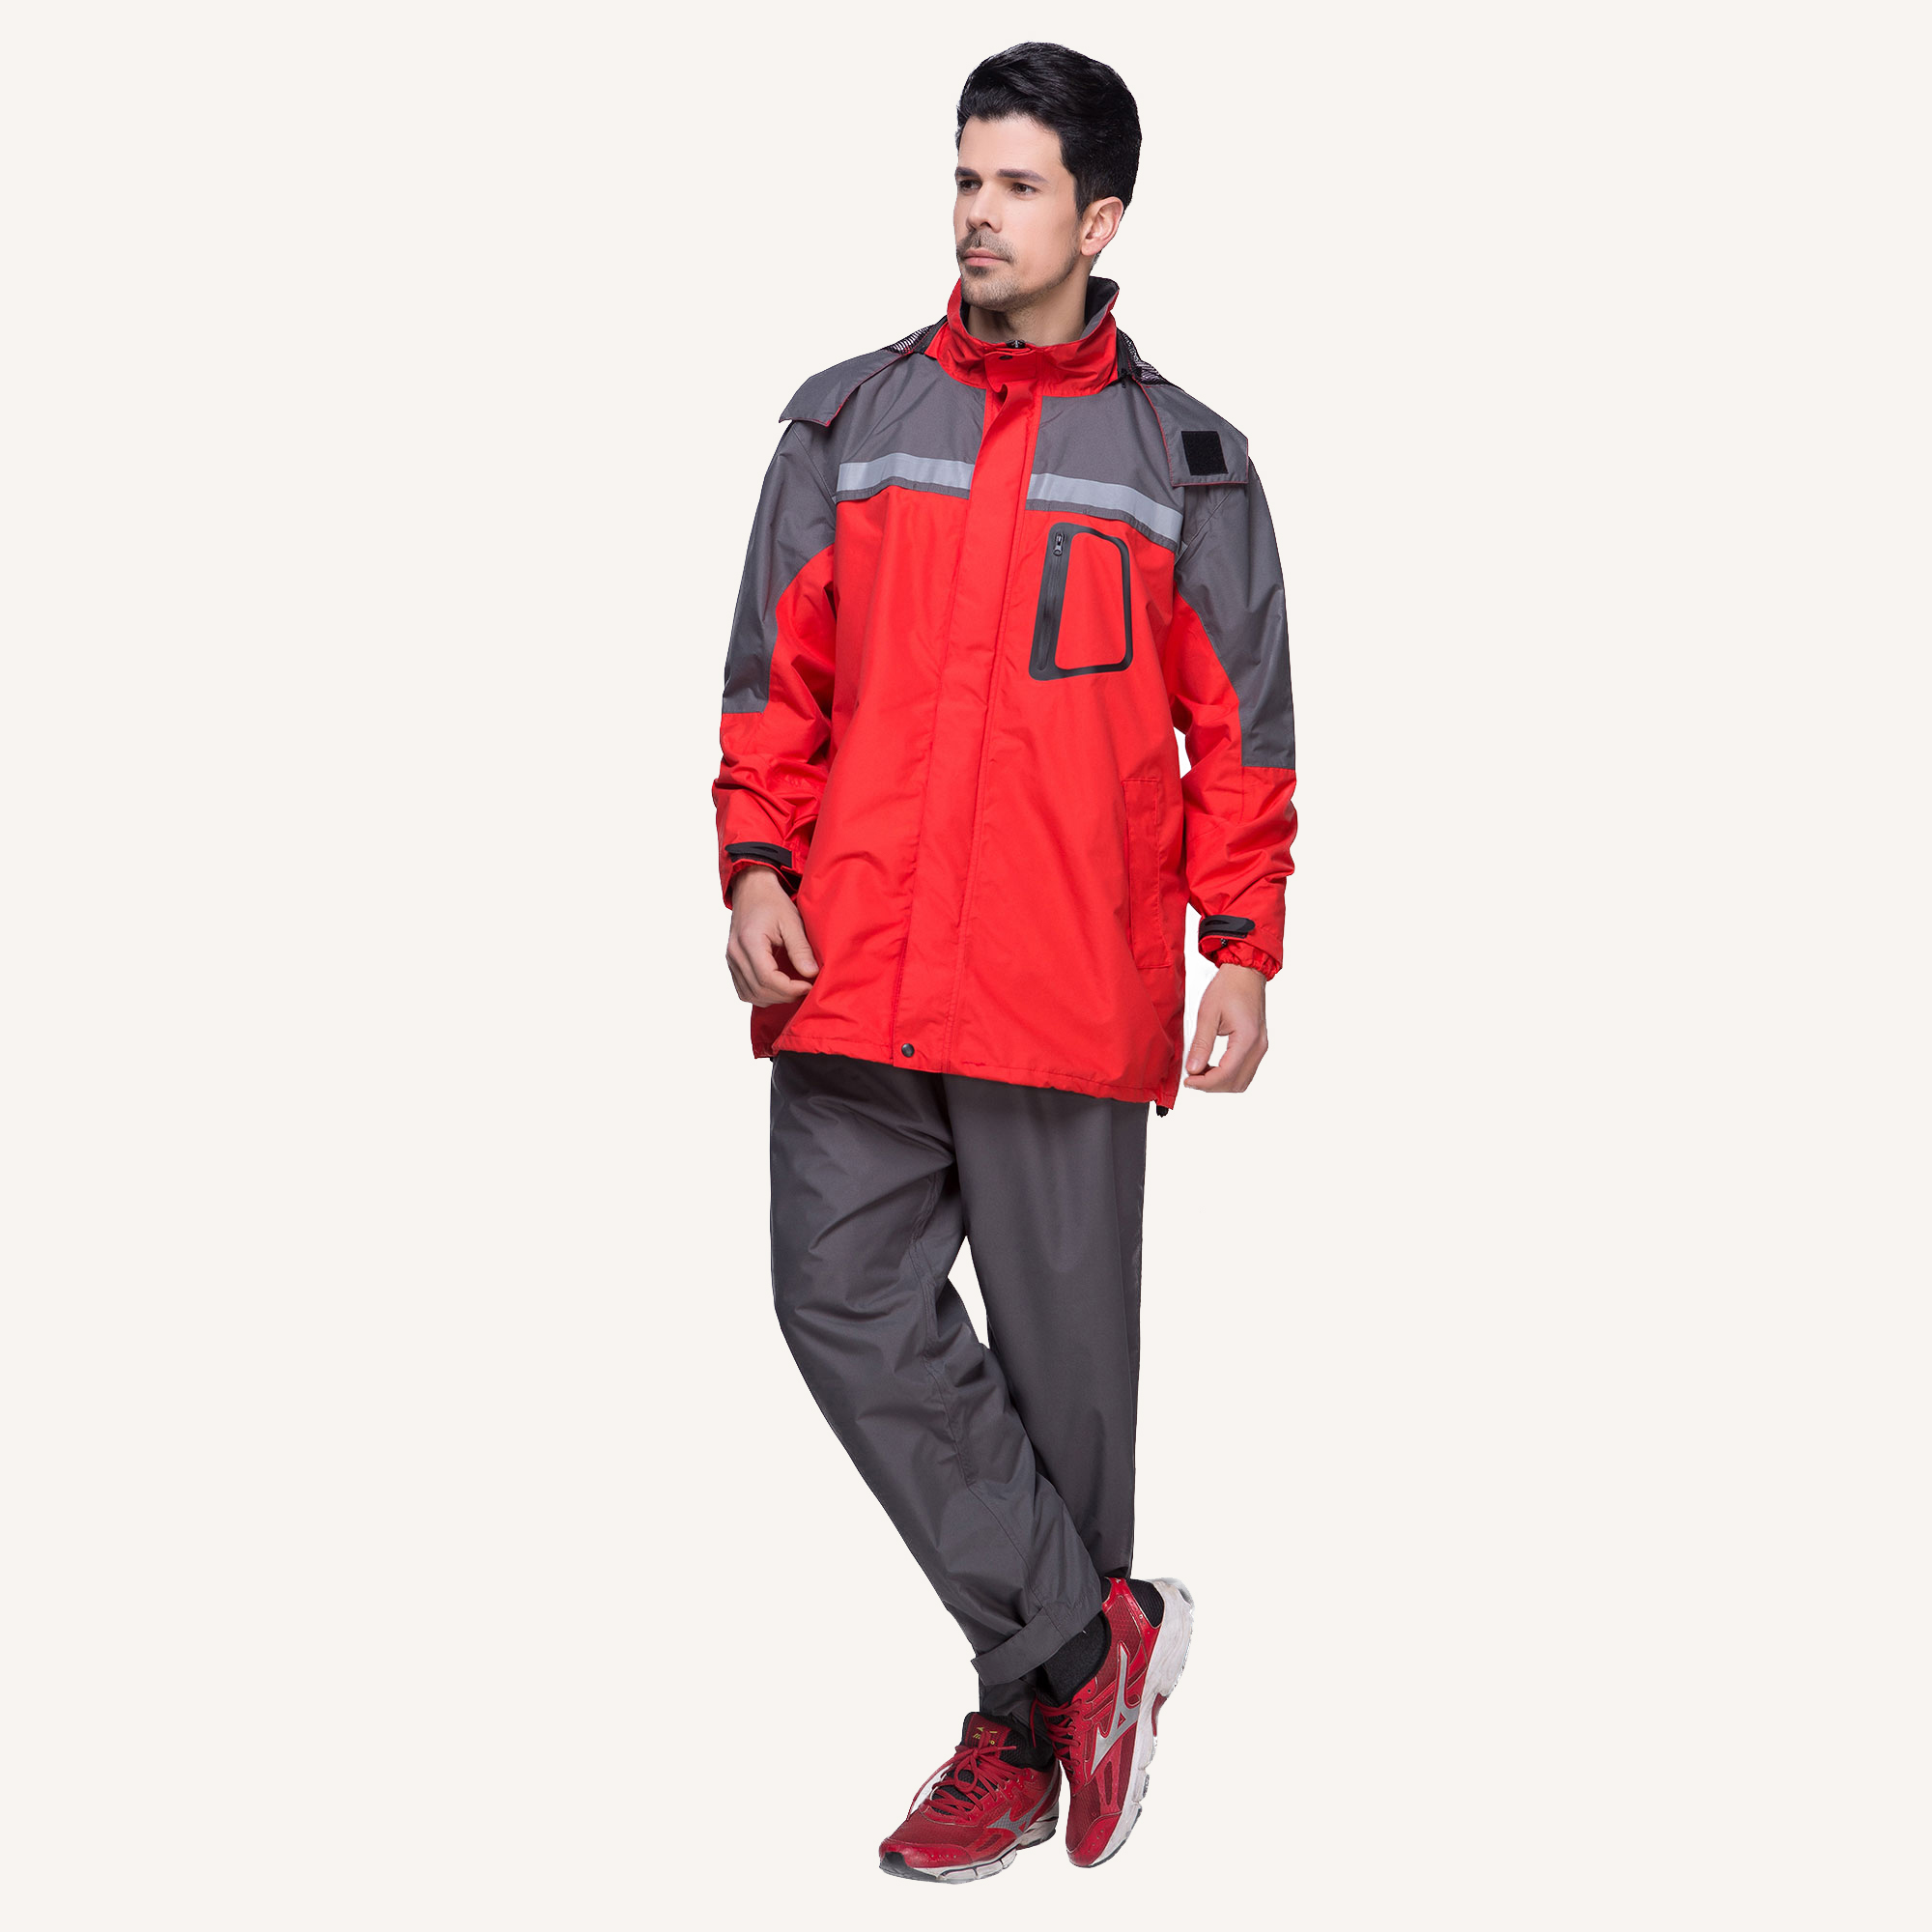 6850 Multi-color Sportanzug Wasserdichte Regenjacke